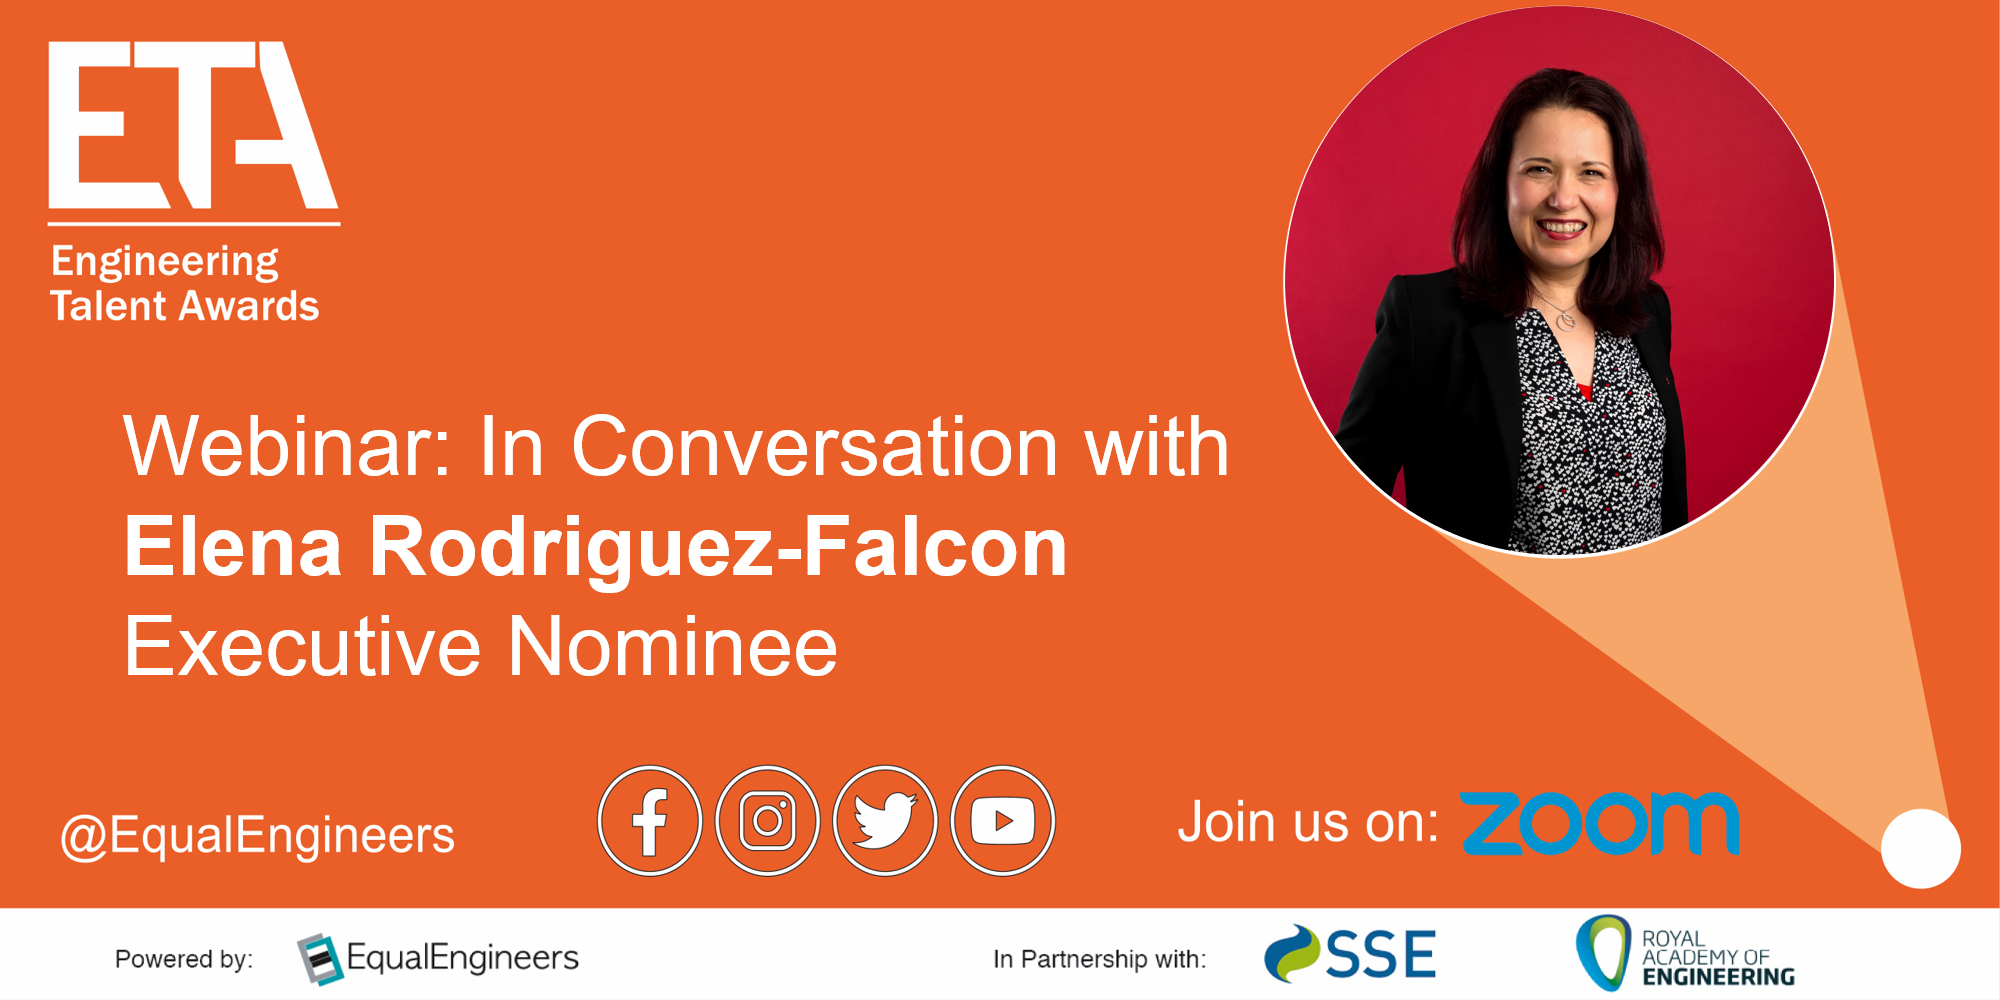 executive-nominee-elena-rodriguez-falcon